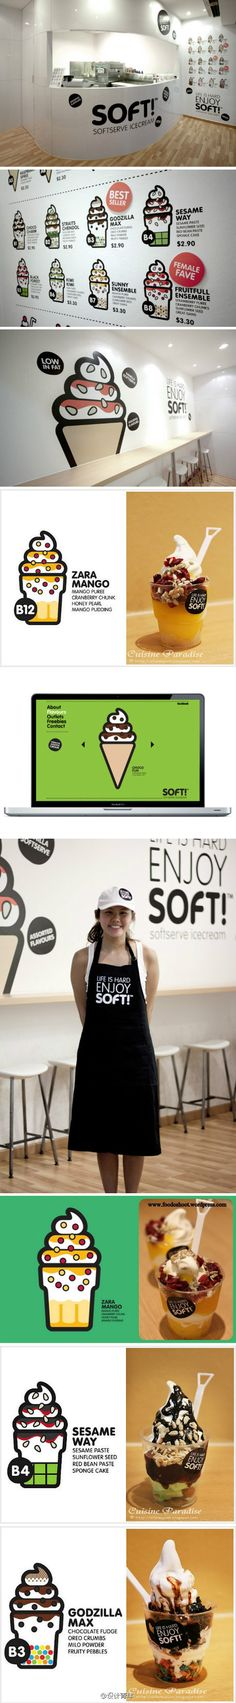 Soft! Nice branding / pack / www suite.  ihnynotes: like the cartoony cones a…